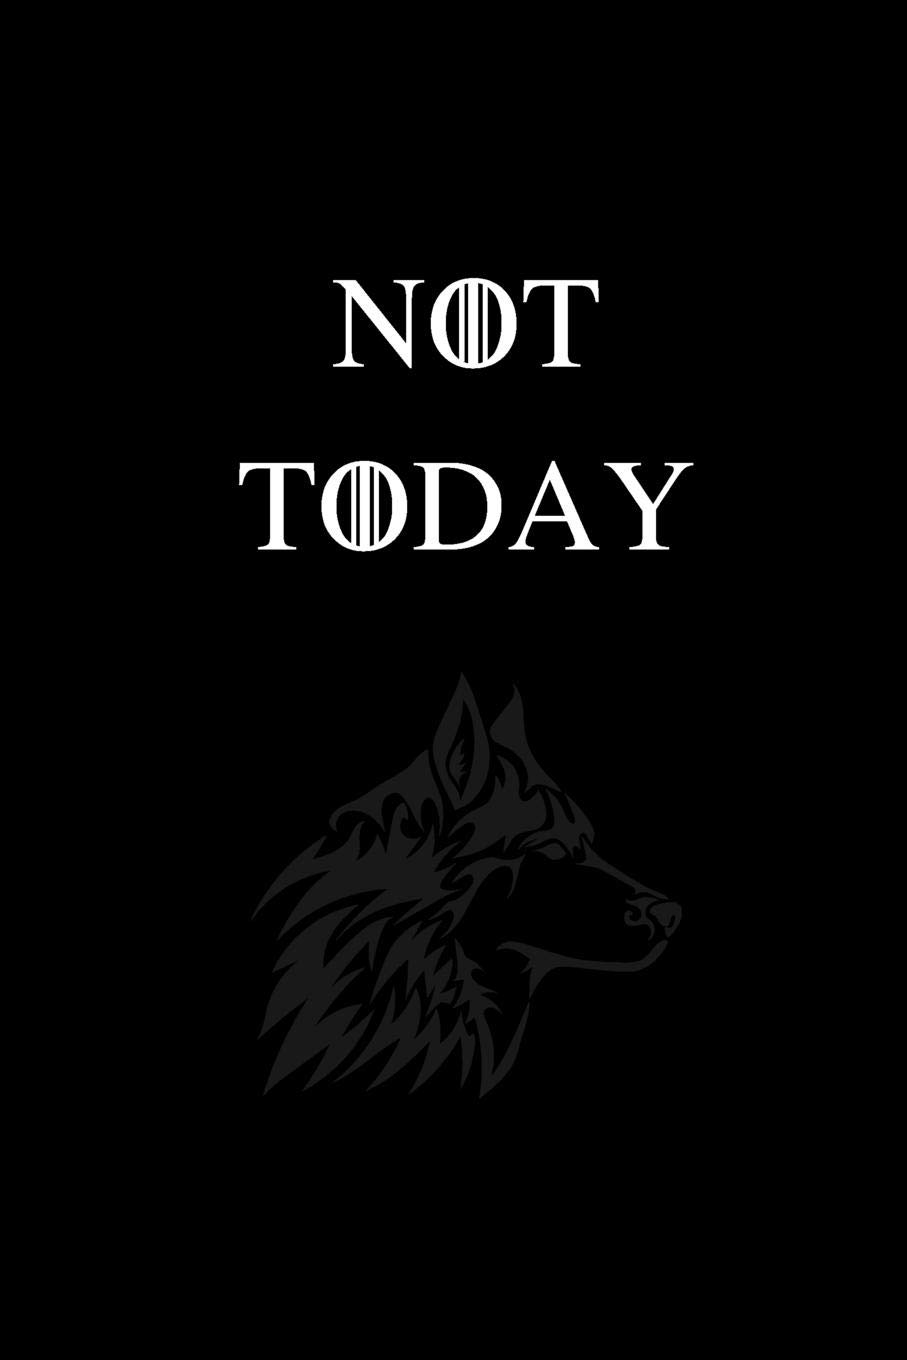 Not Today: No.5 Game of Thrones Quote By Arya Stark - Black Color